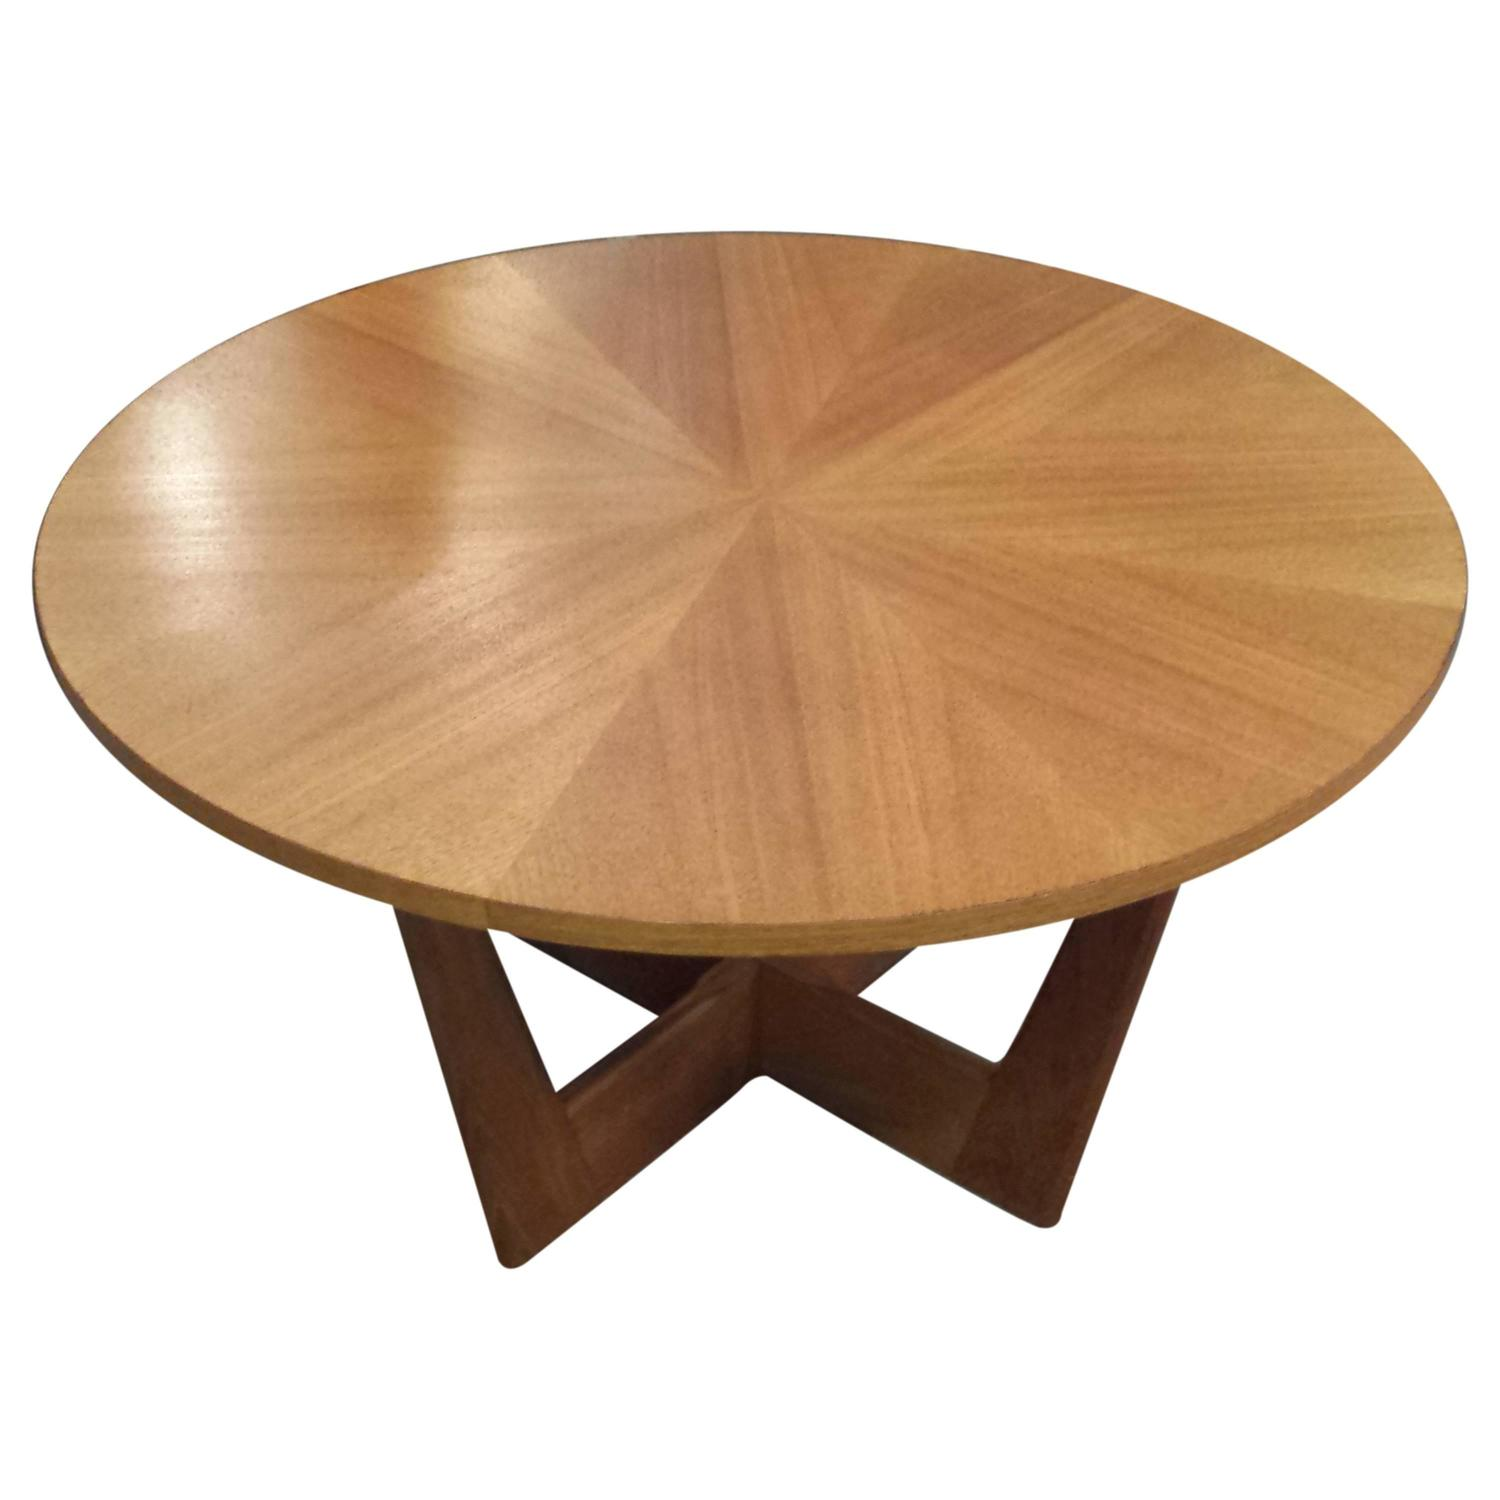 Danish Teak Circular Midcentury Coffee Table With Pie